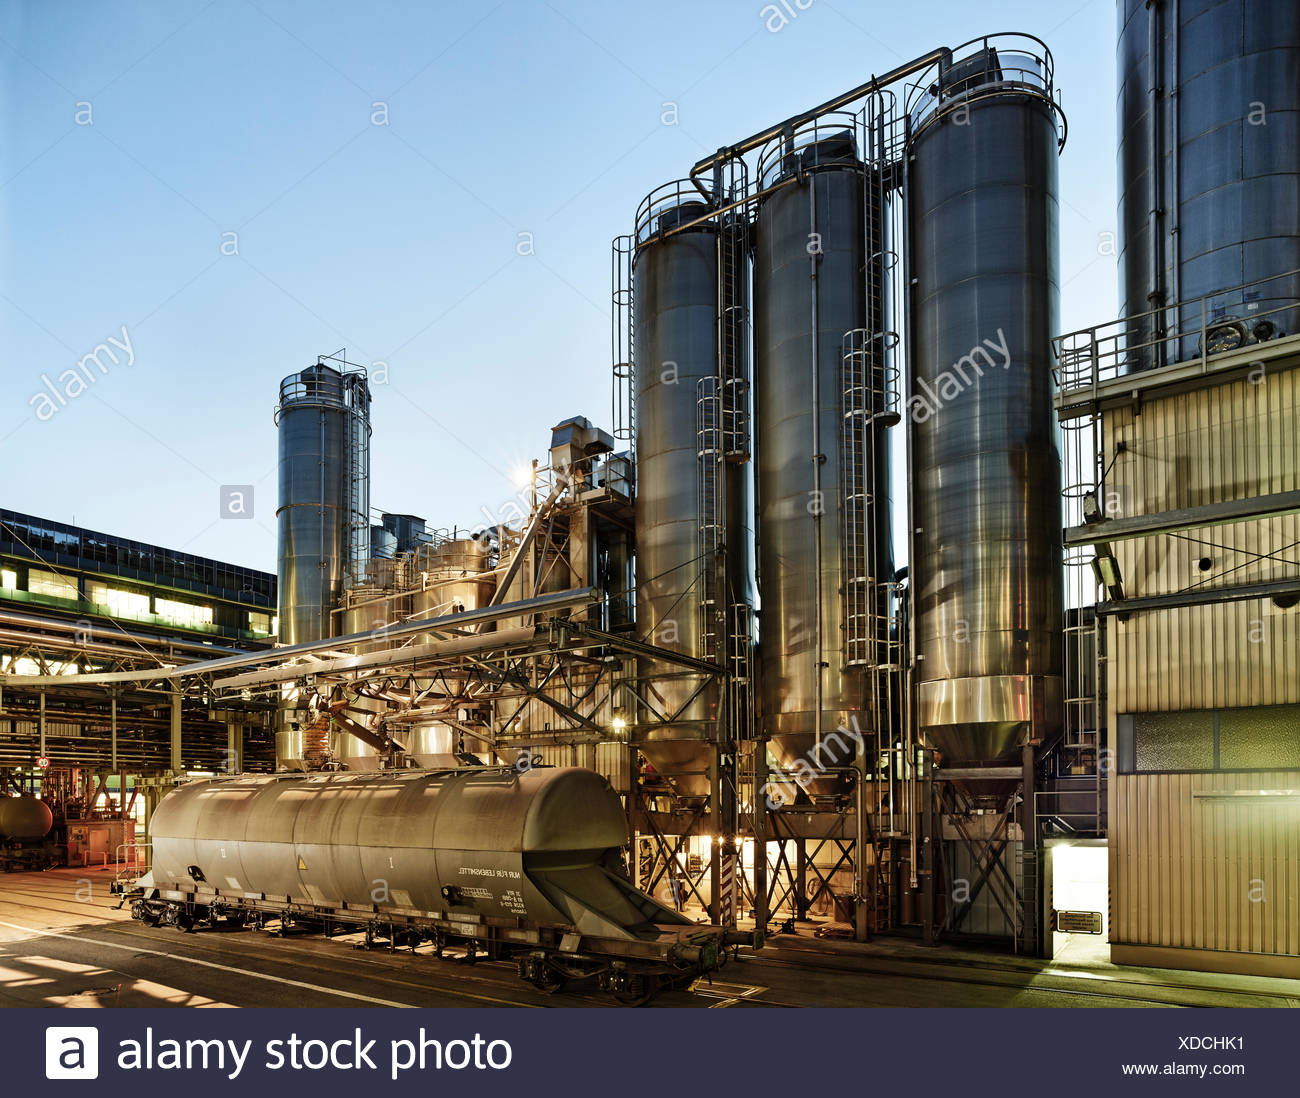 Industrial plant, production facility, pharmaceutical industry, Kundl, Tyrol, Austria - Stock Image